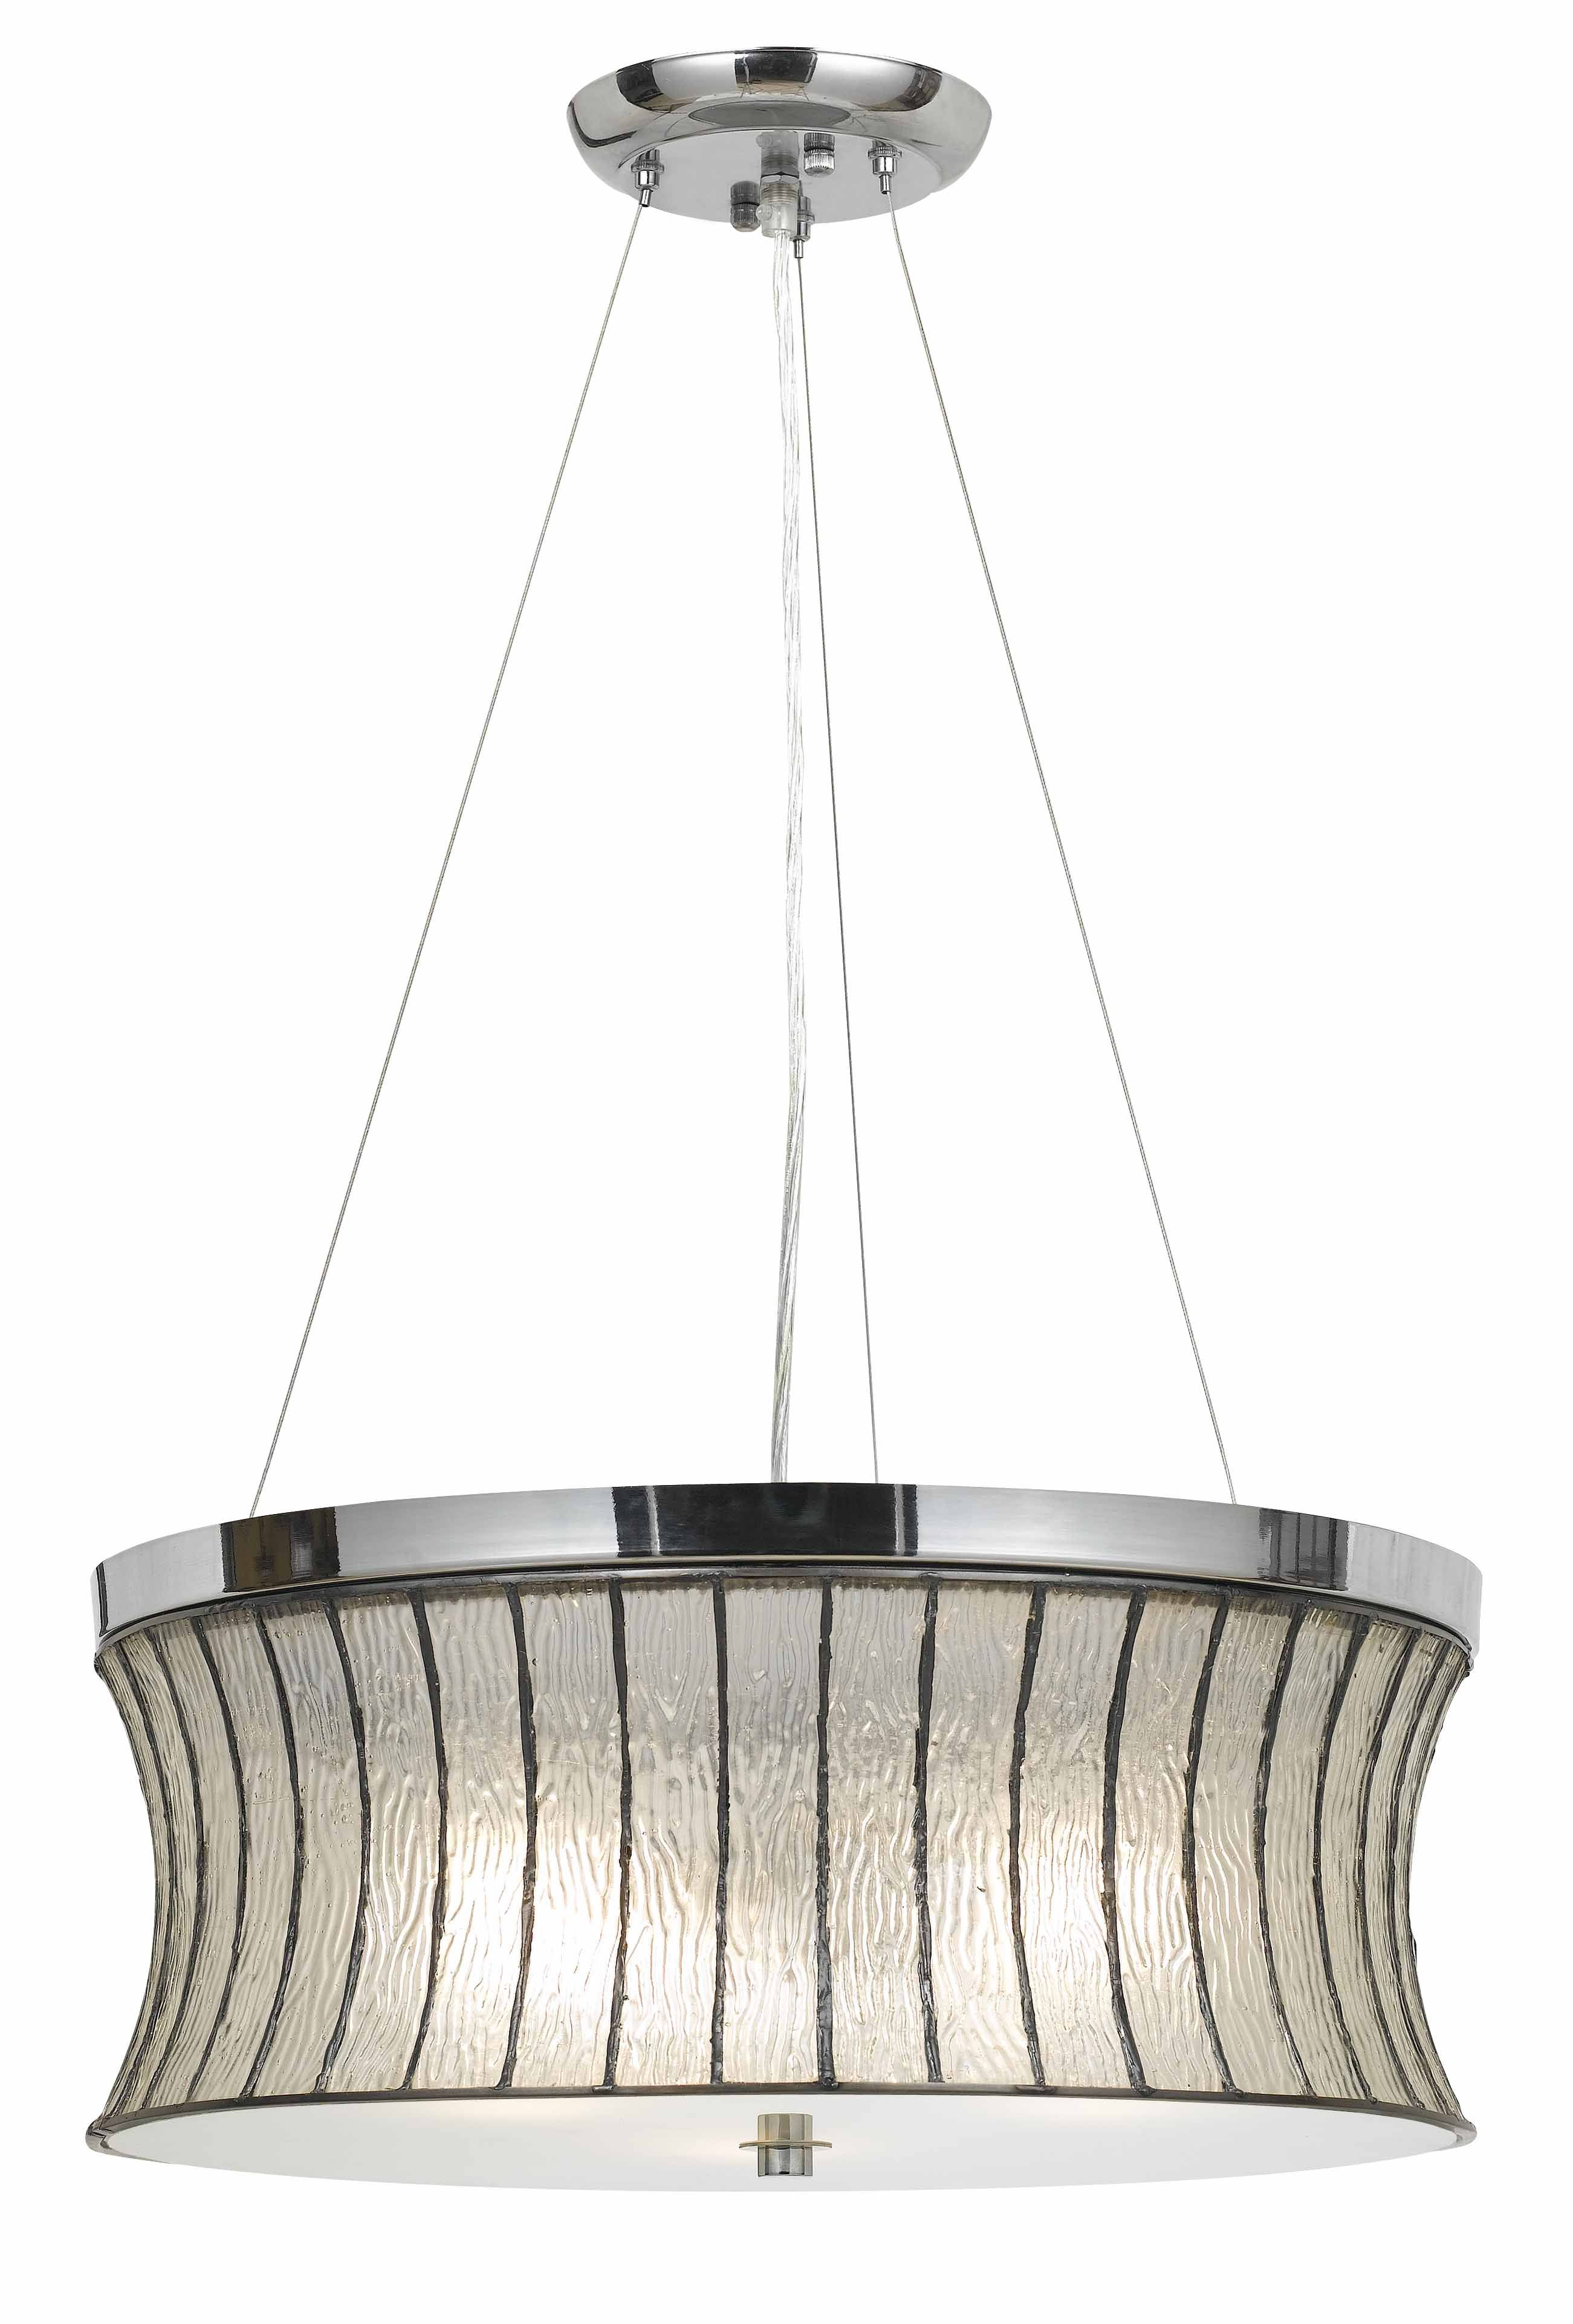 Cal Lighting Fx 3546 1p 60w X 3 Glass Pendant Drum Chandelier